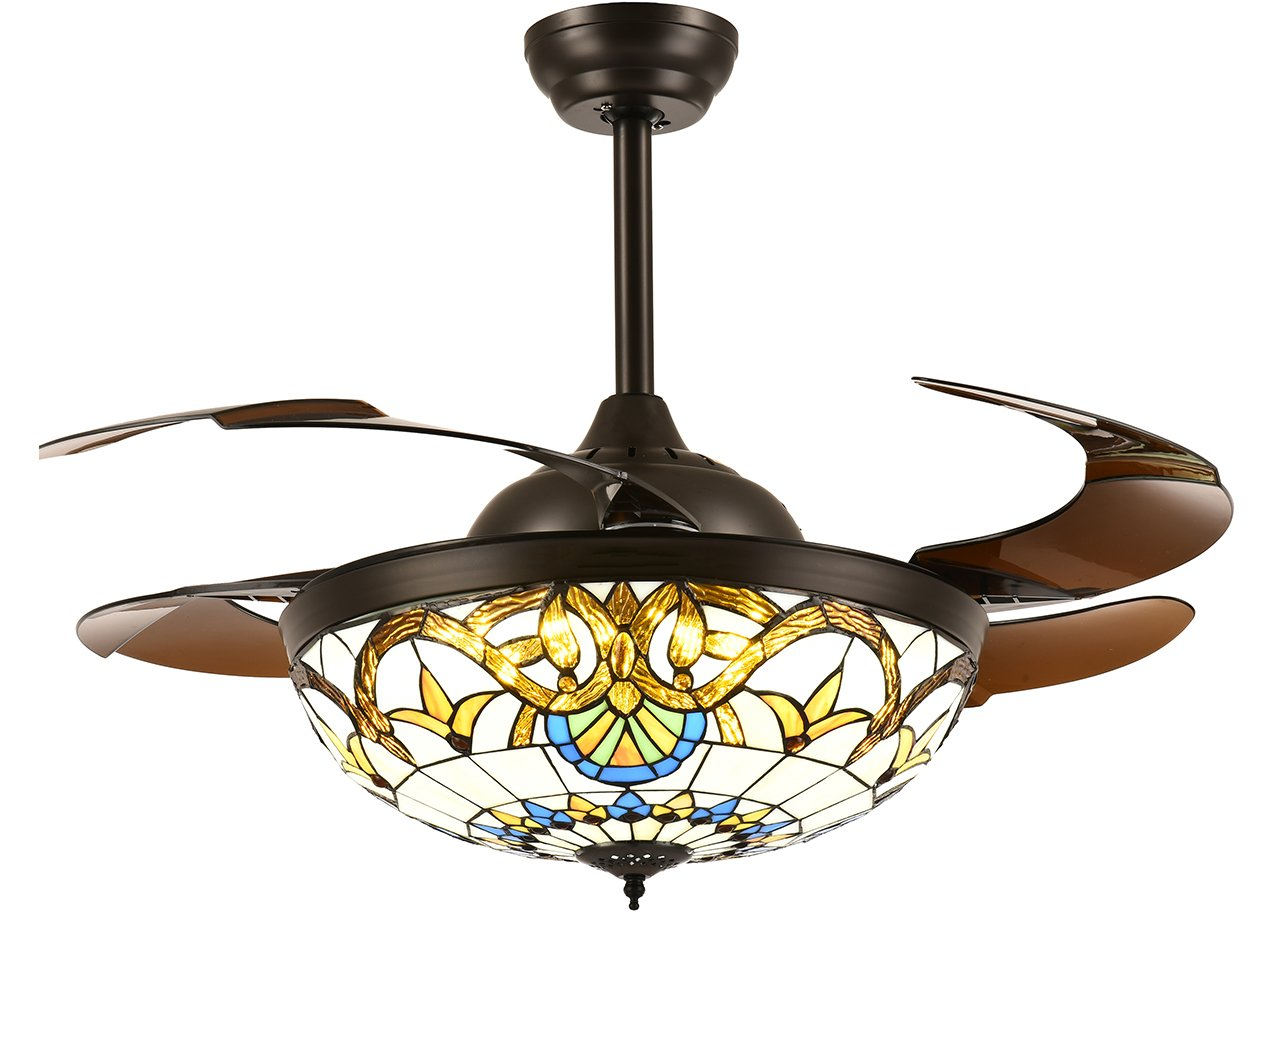 Siljoy Tiffany Style Ceiling Fans with Lights and Retractable Blades Dark Brown Invisible Fan Chandelier Dimmable Fandelier LED Lighting (Warm/Daylight/Cool White) 36 INCH